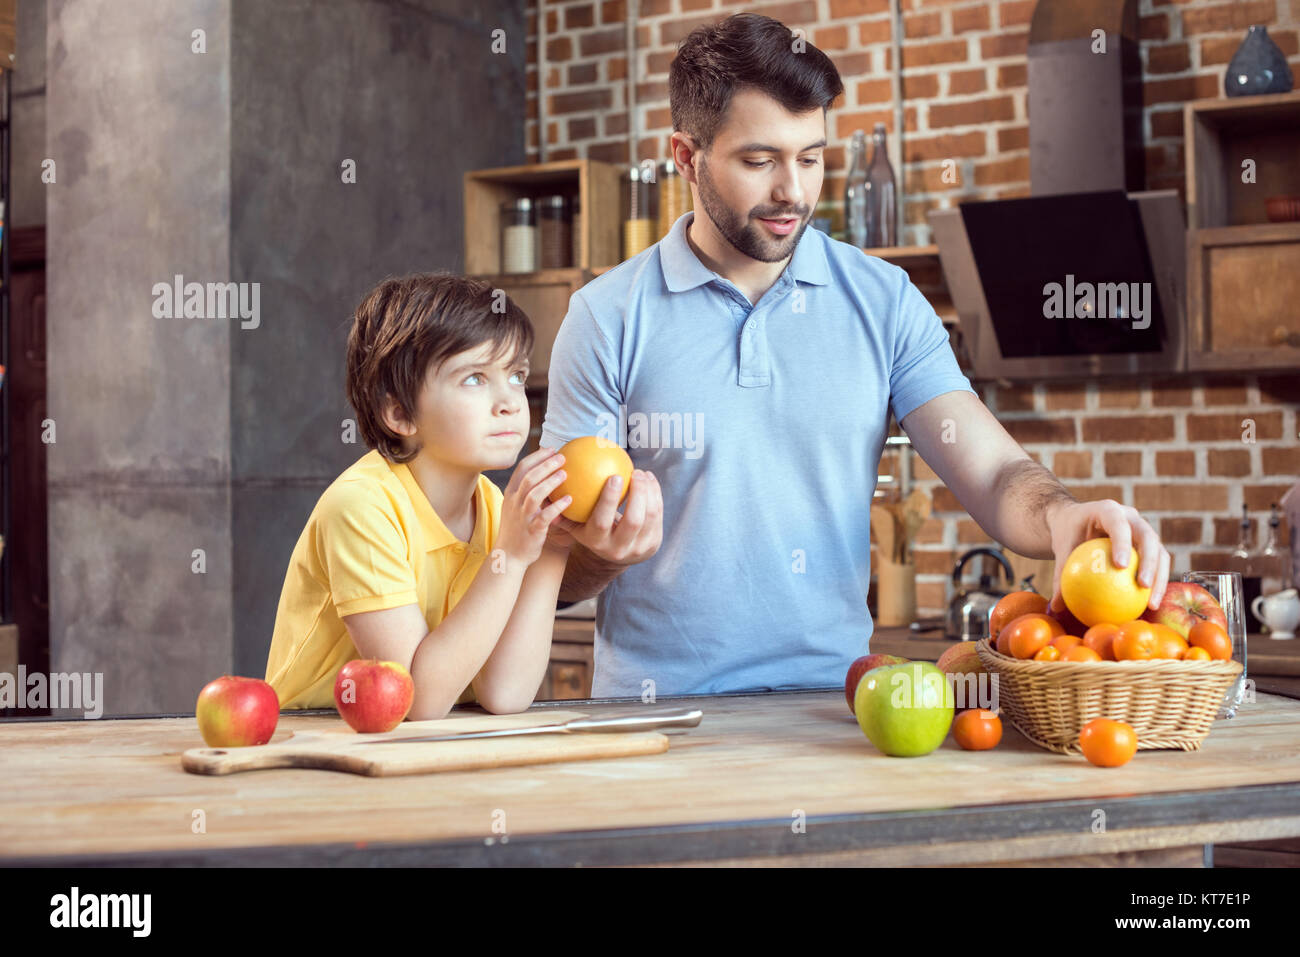 Father and son selecting fruits from basket at kitchen table Stock Photo